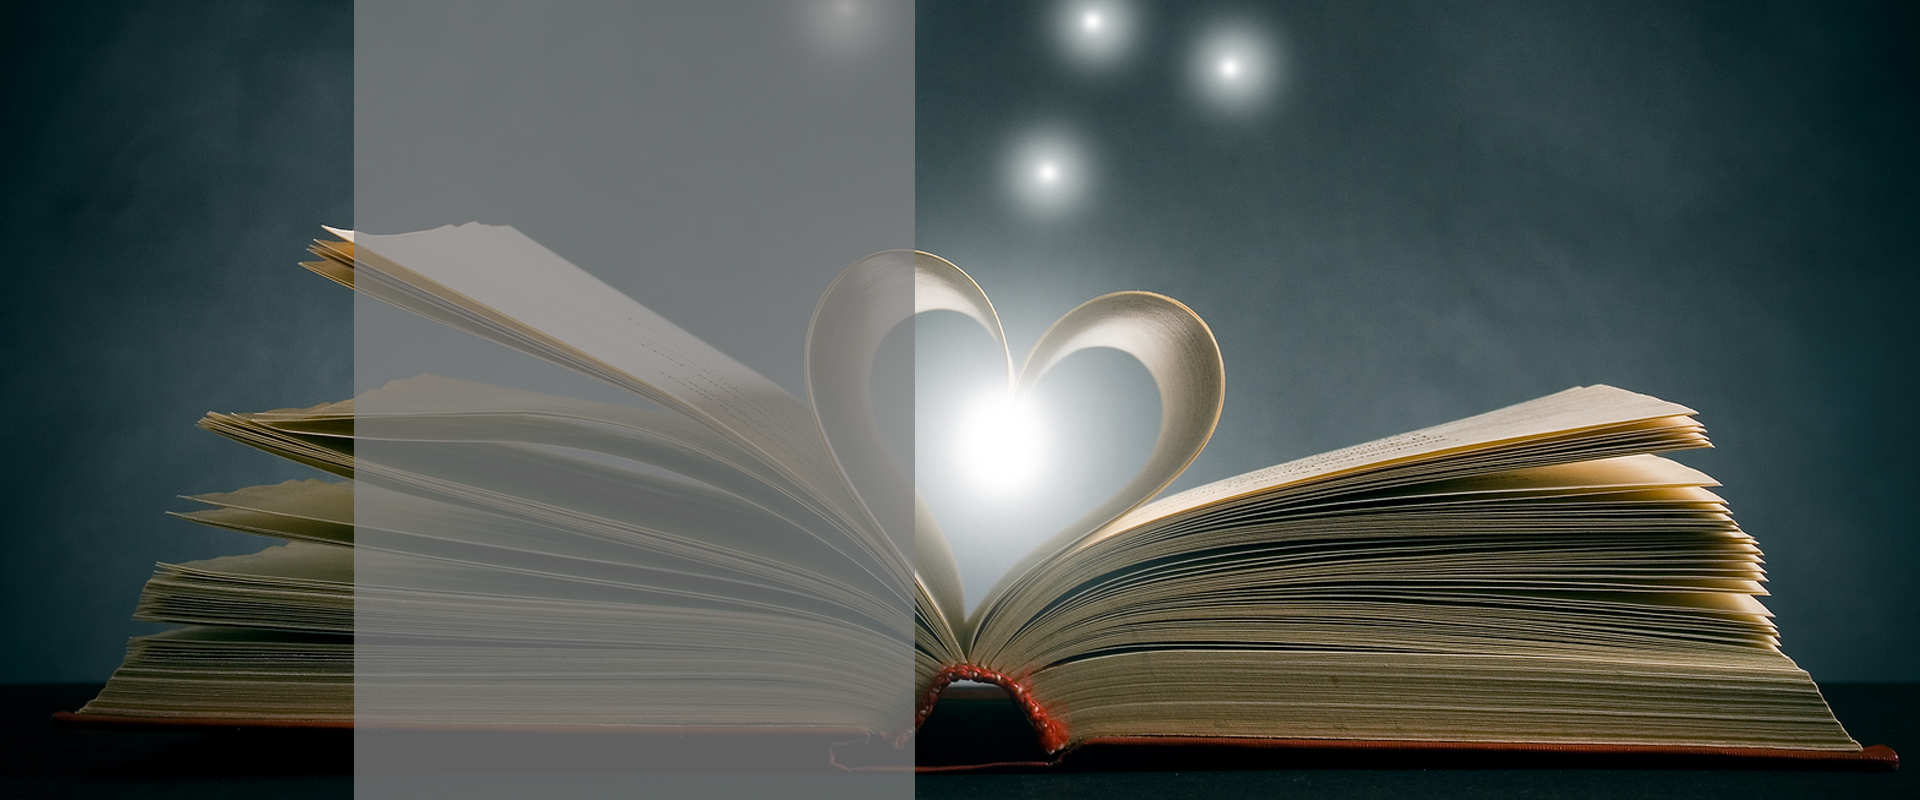 Book with heart in pages